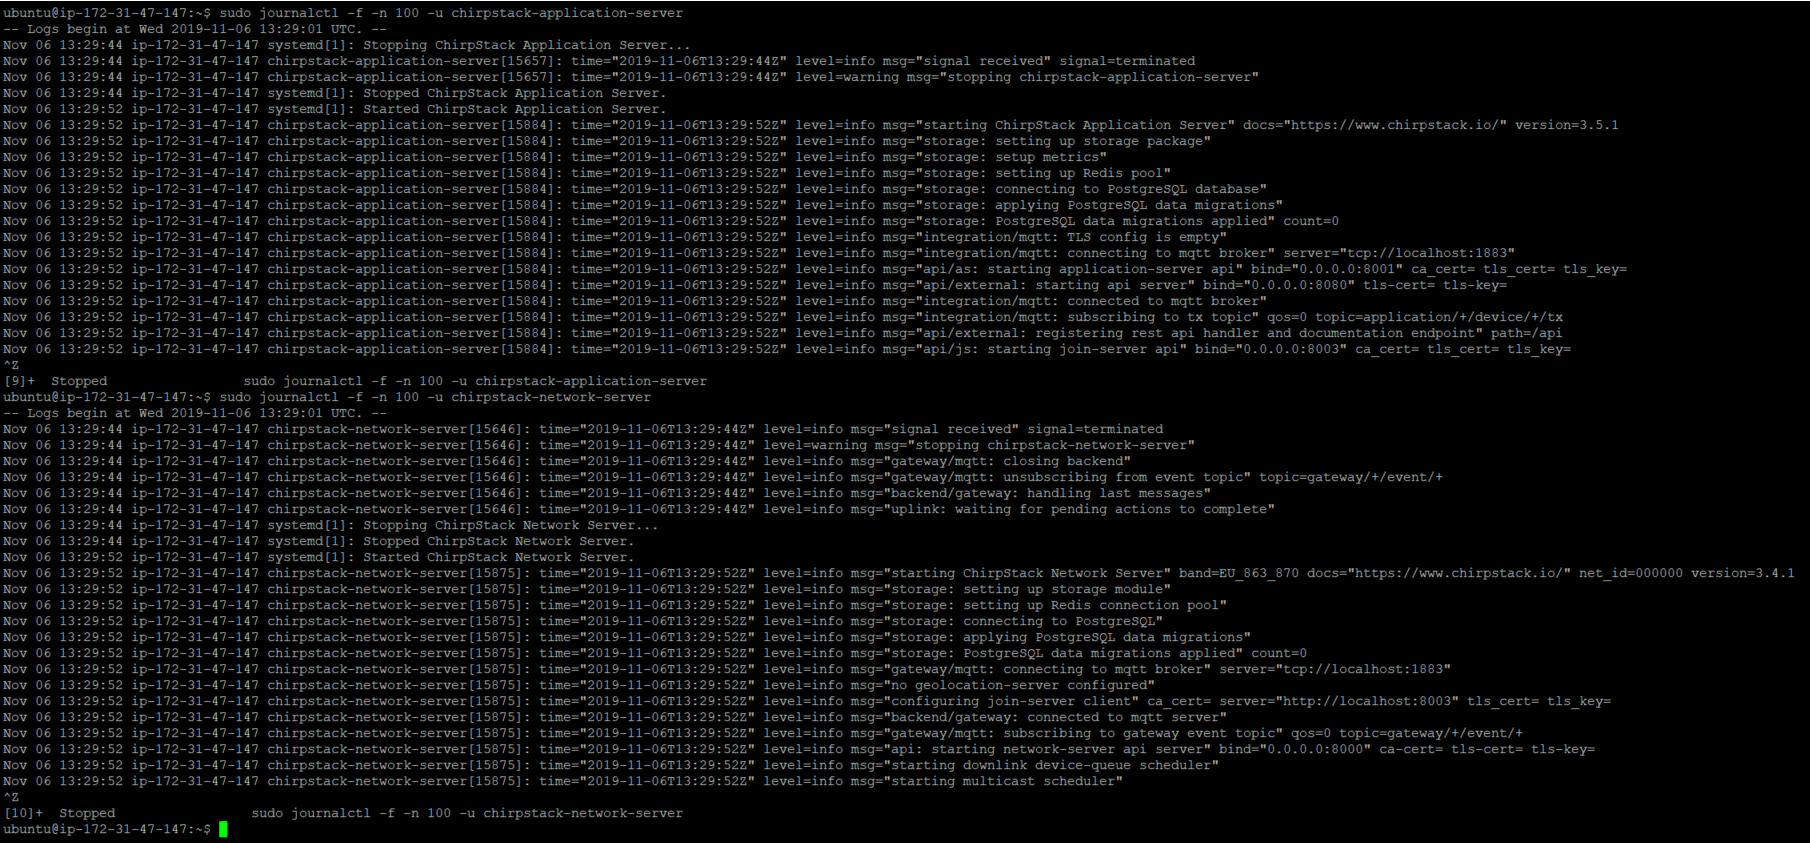 ChirpStack Journal Control Output (no errors).png